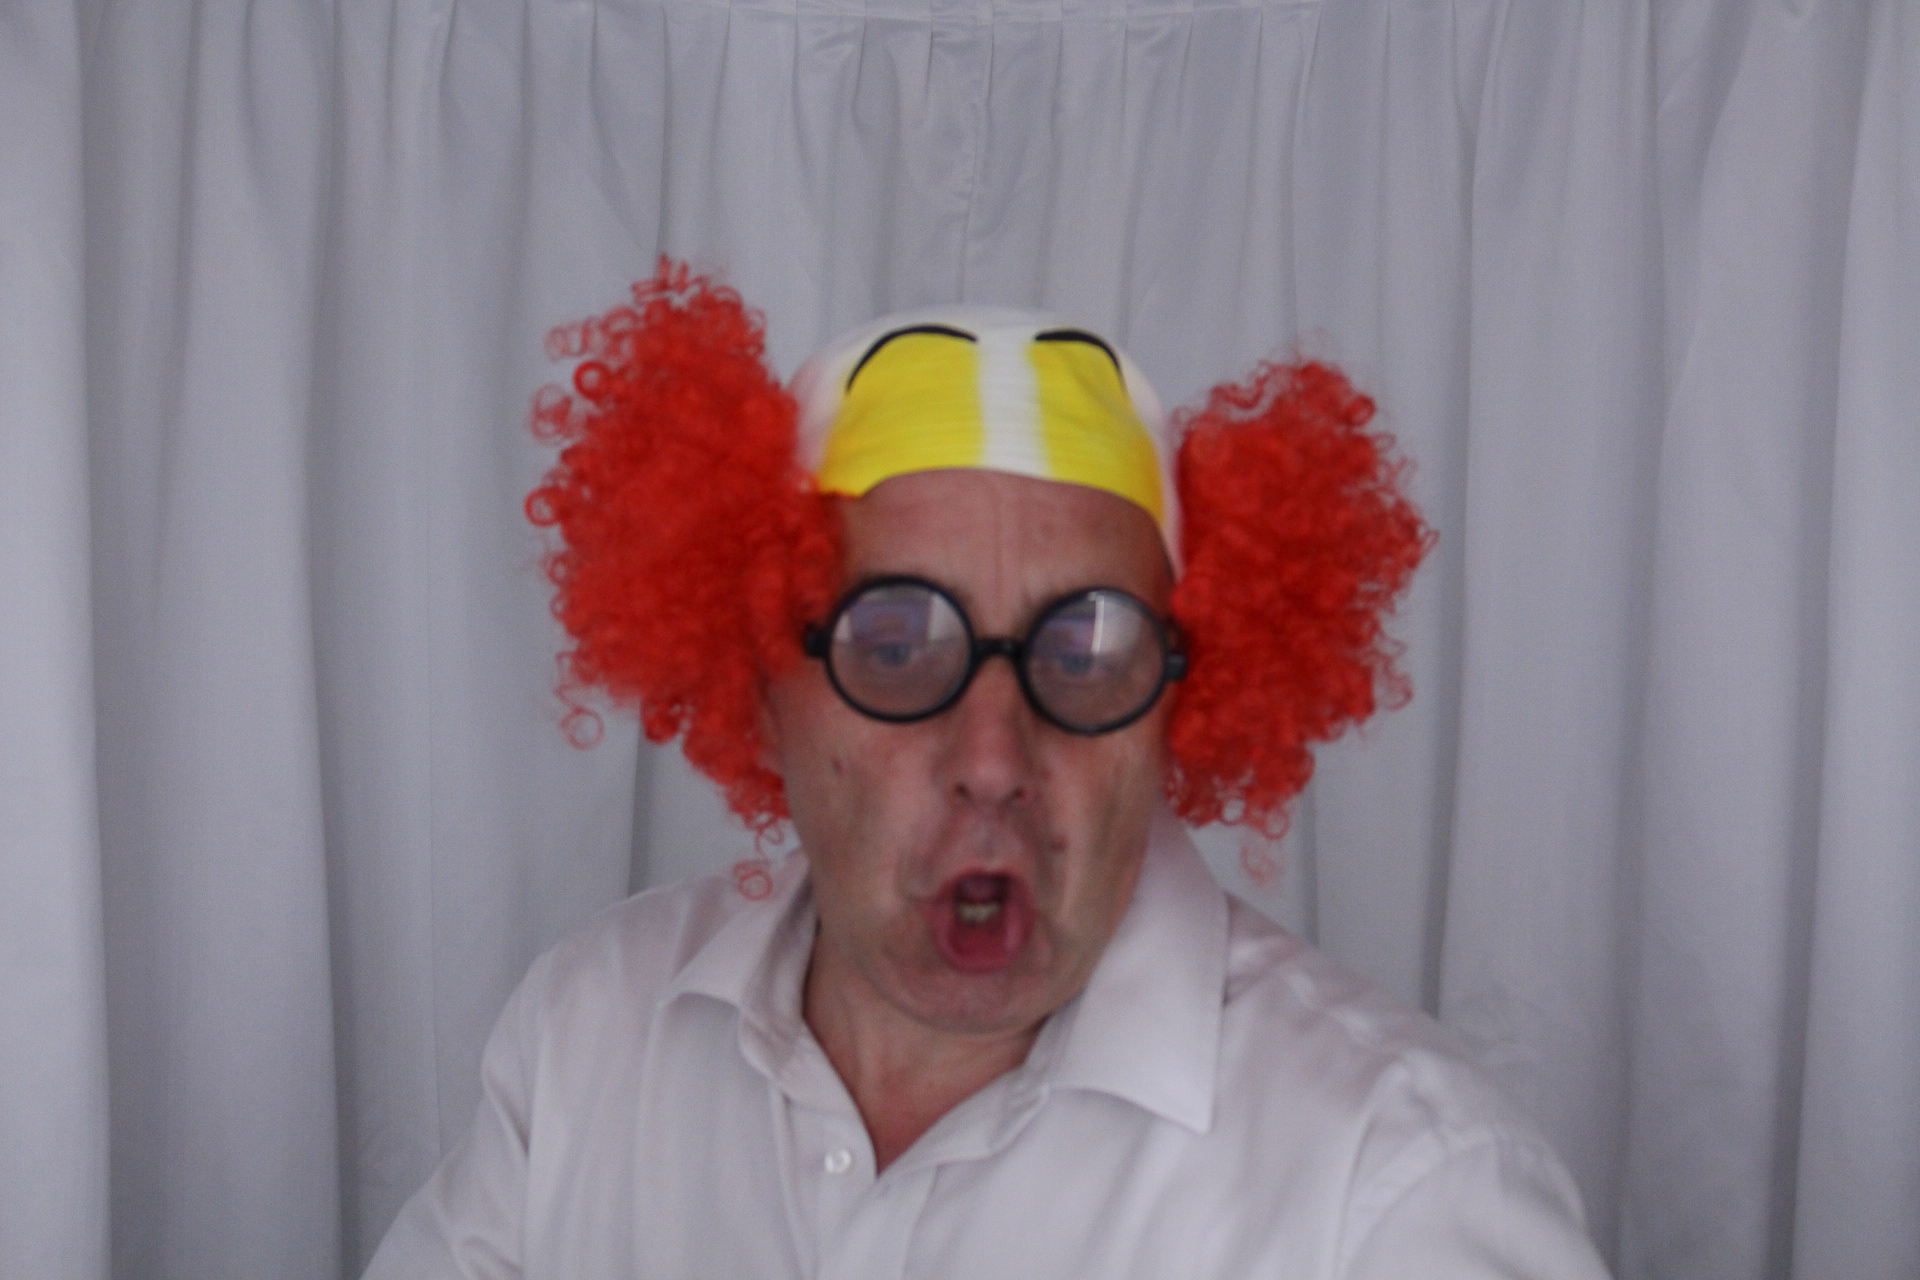 The crazy one, Jhn clowning around in our photo booth